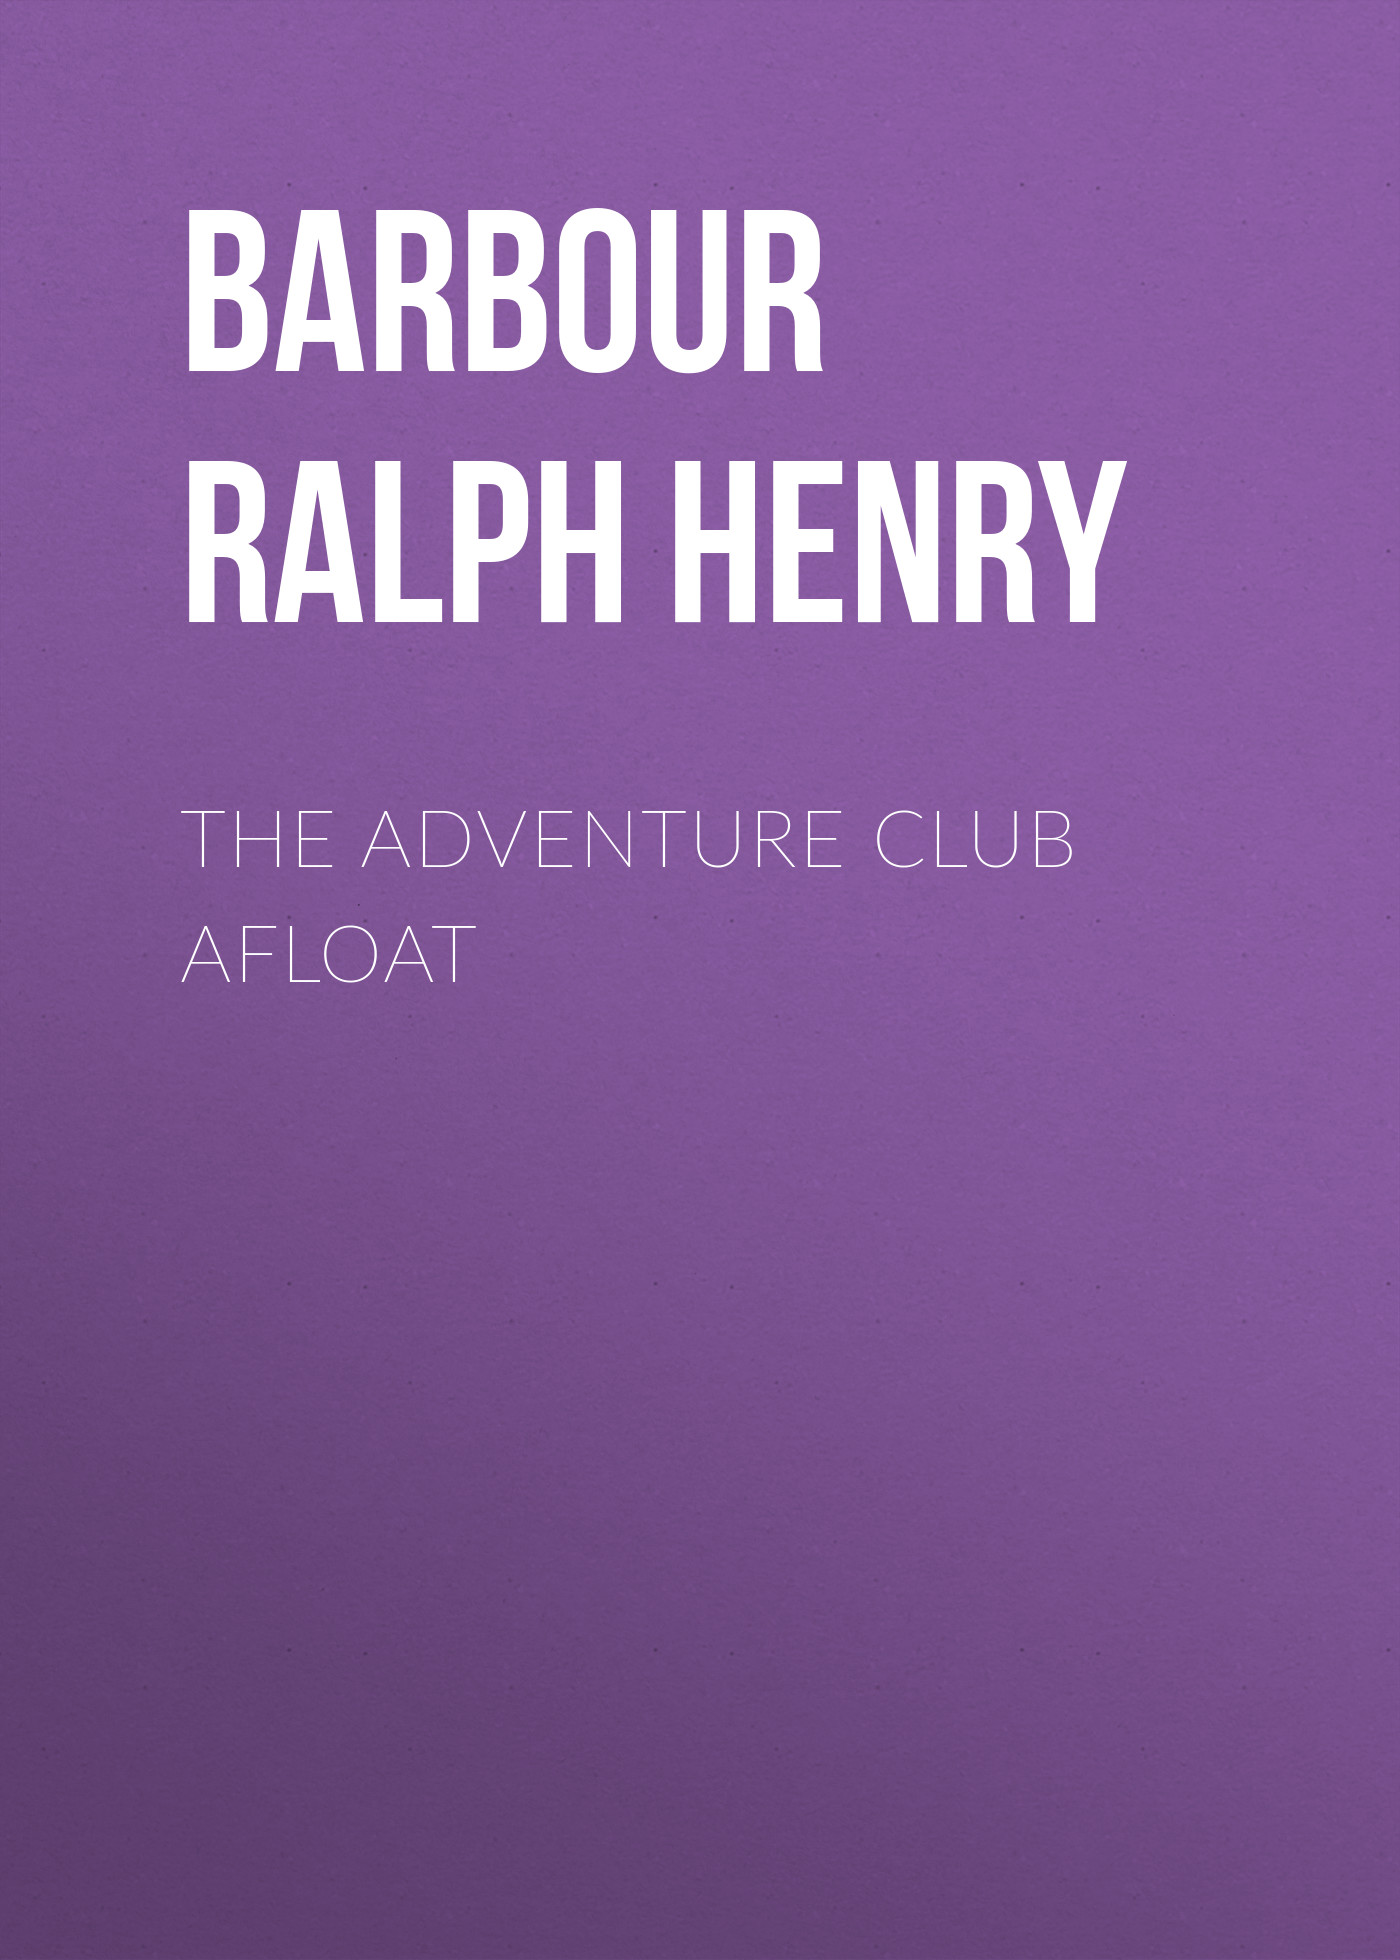 Barbour Ralph Henry The Adventure Club Afloat pilobolus – shadowland the new adventure 2018 12 02t19 00